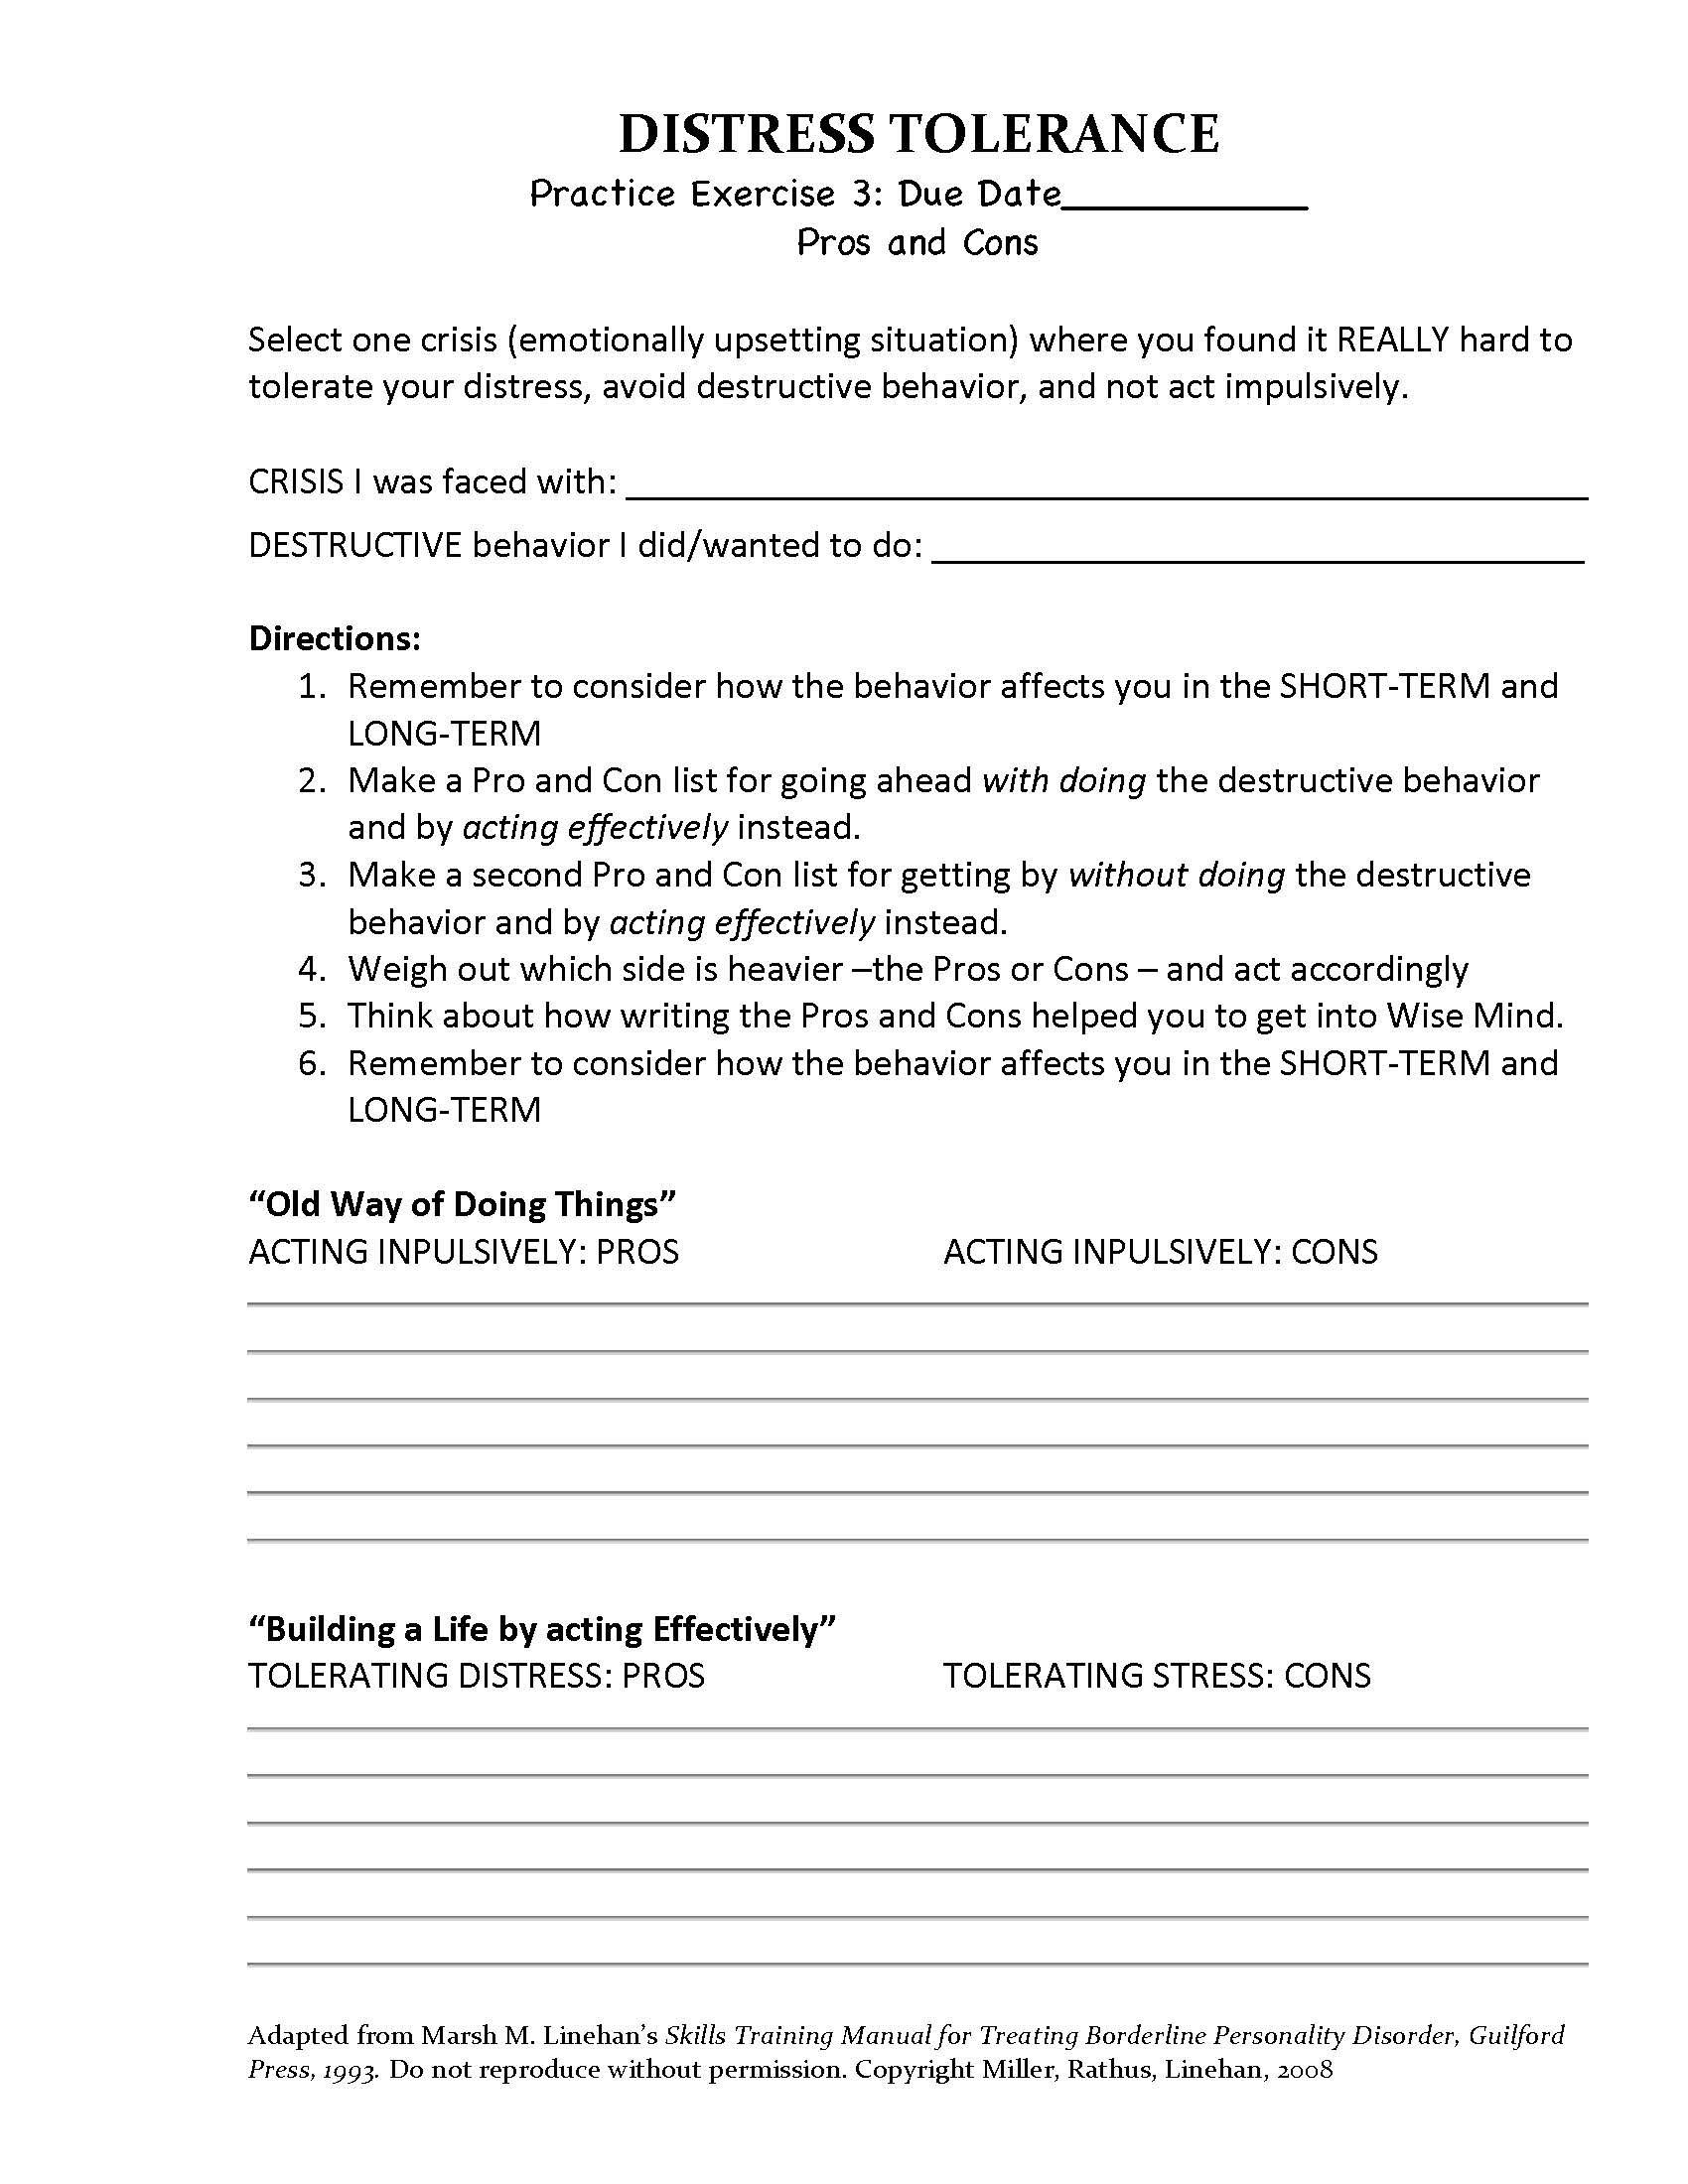 Adaptation Worksheets for Middle School Dbt Distress tolerance Pros Cons Homework assignment 3